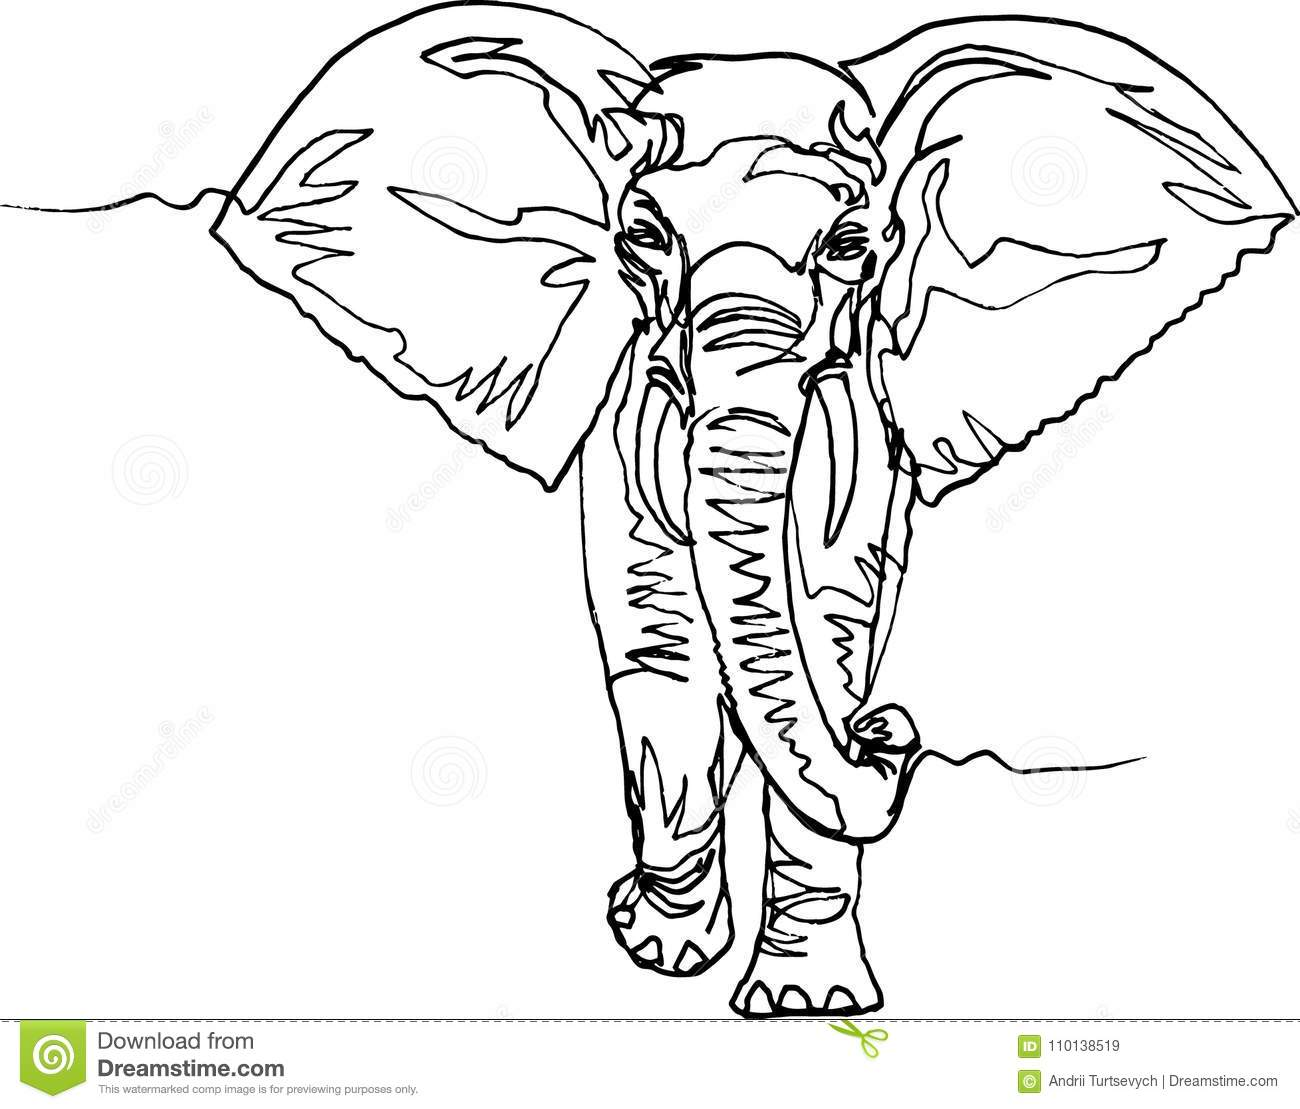 Elephant. Africa, Continuous Line. Stock Vector